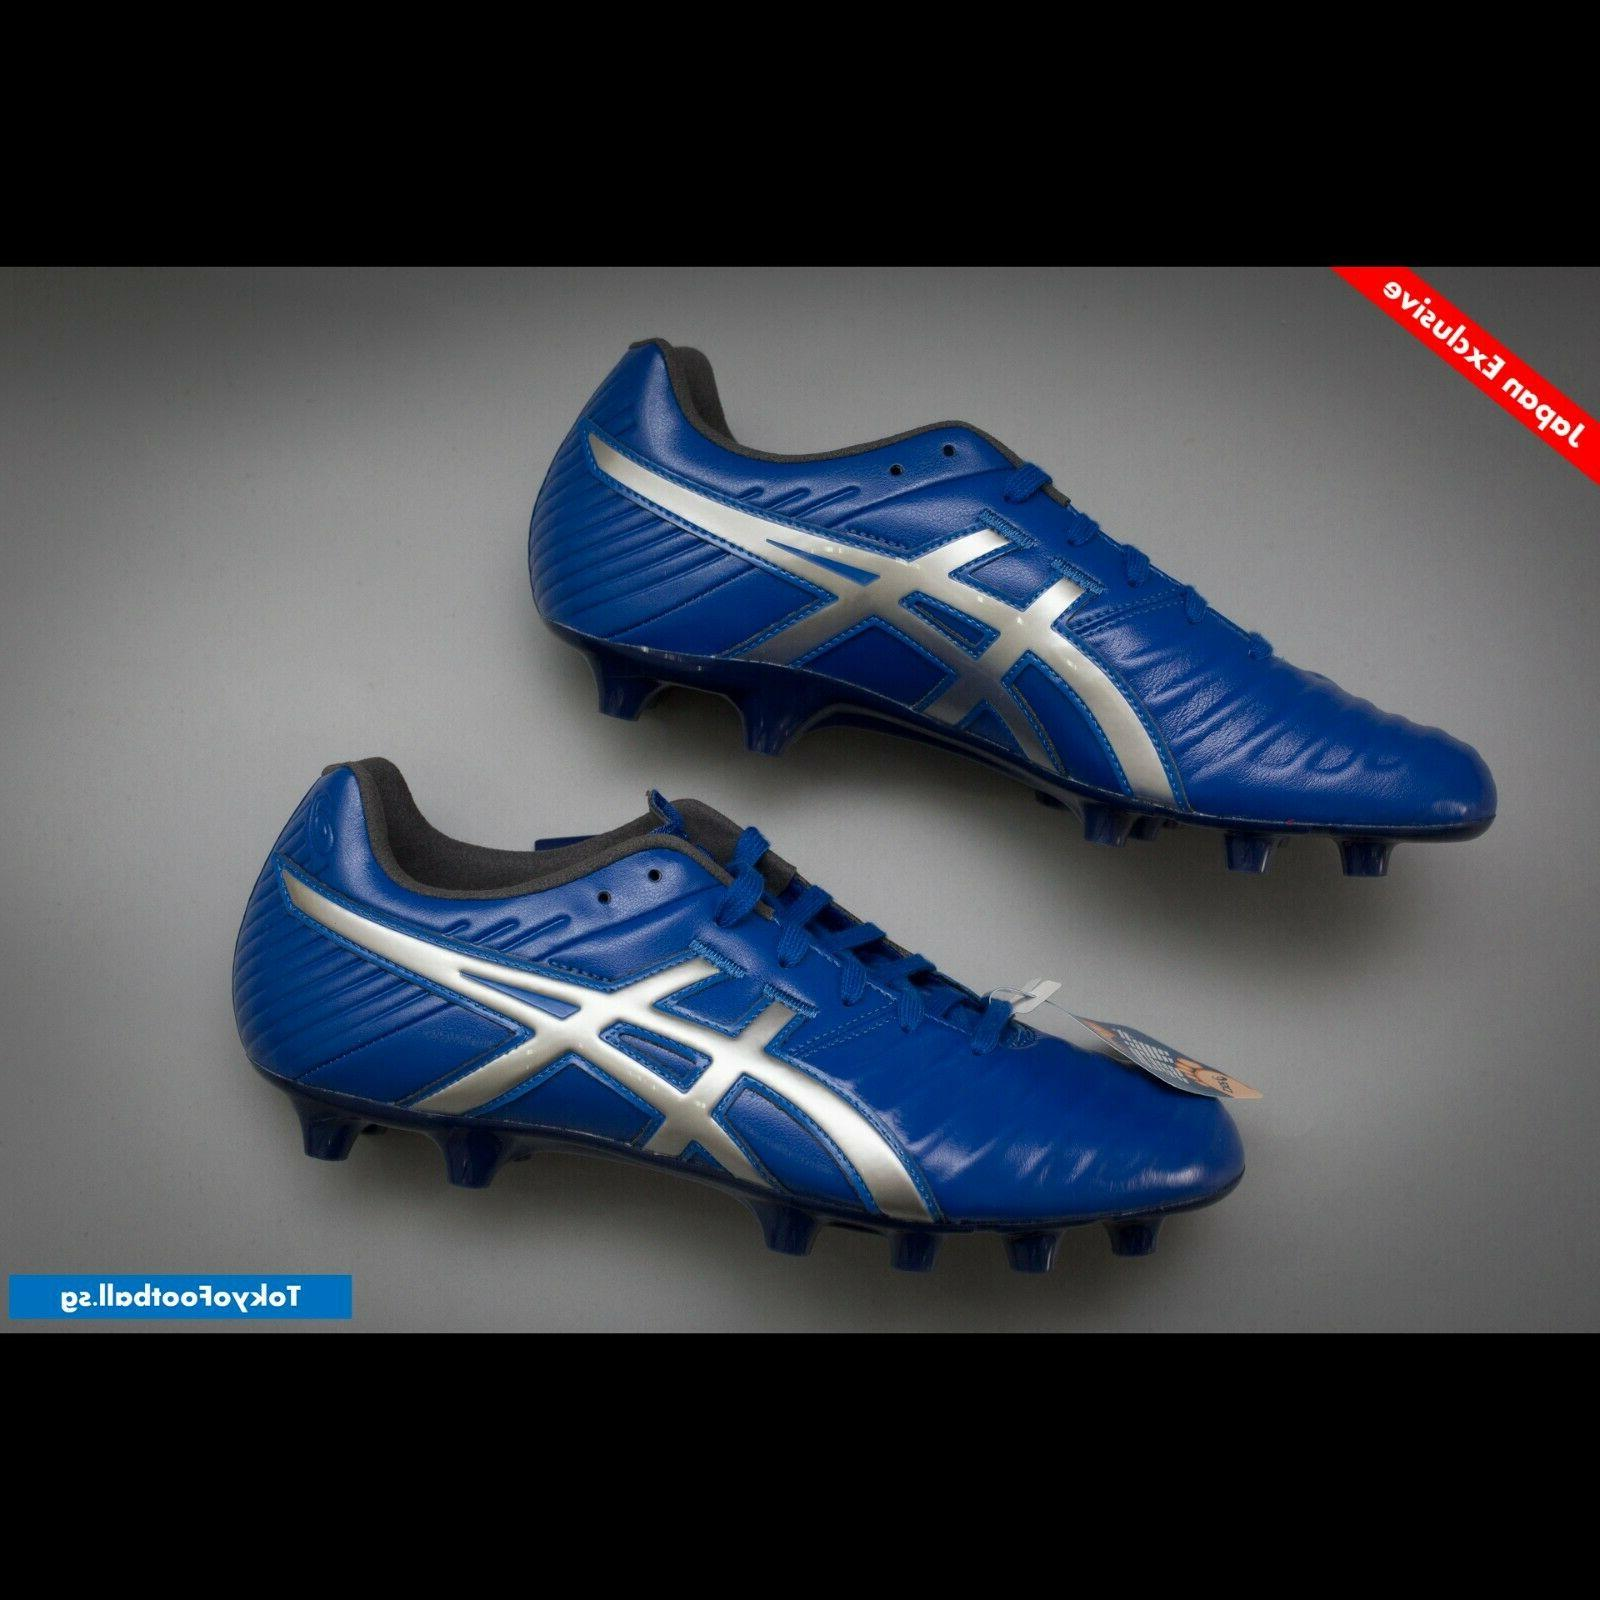 Asics Wide soccer cleats shoes